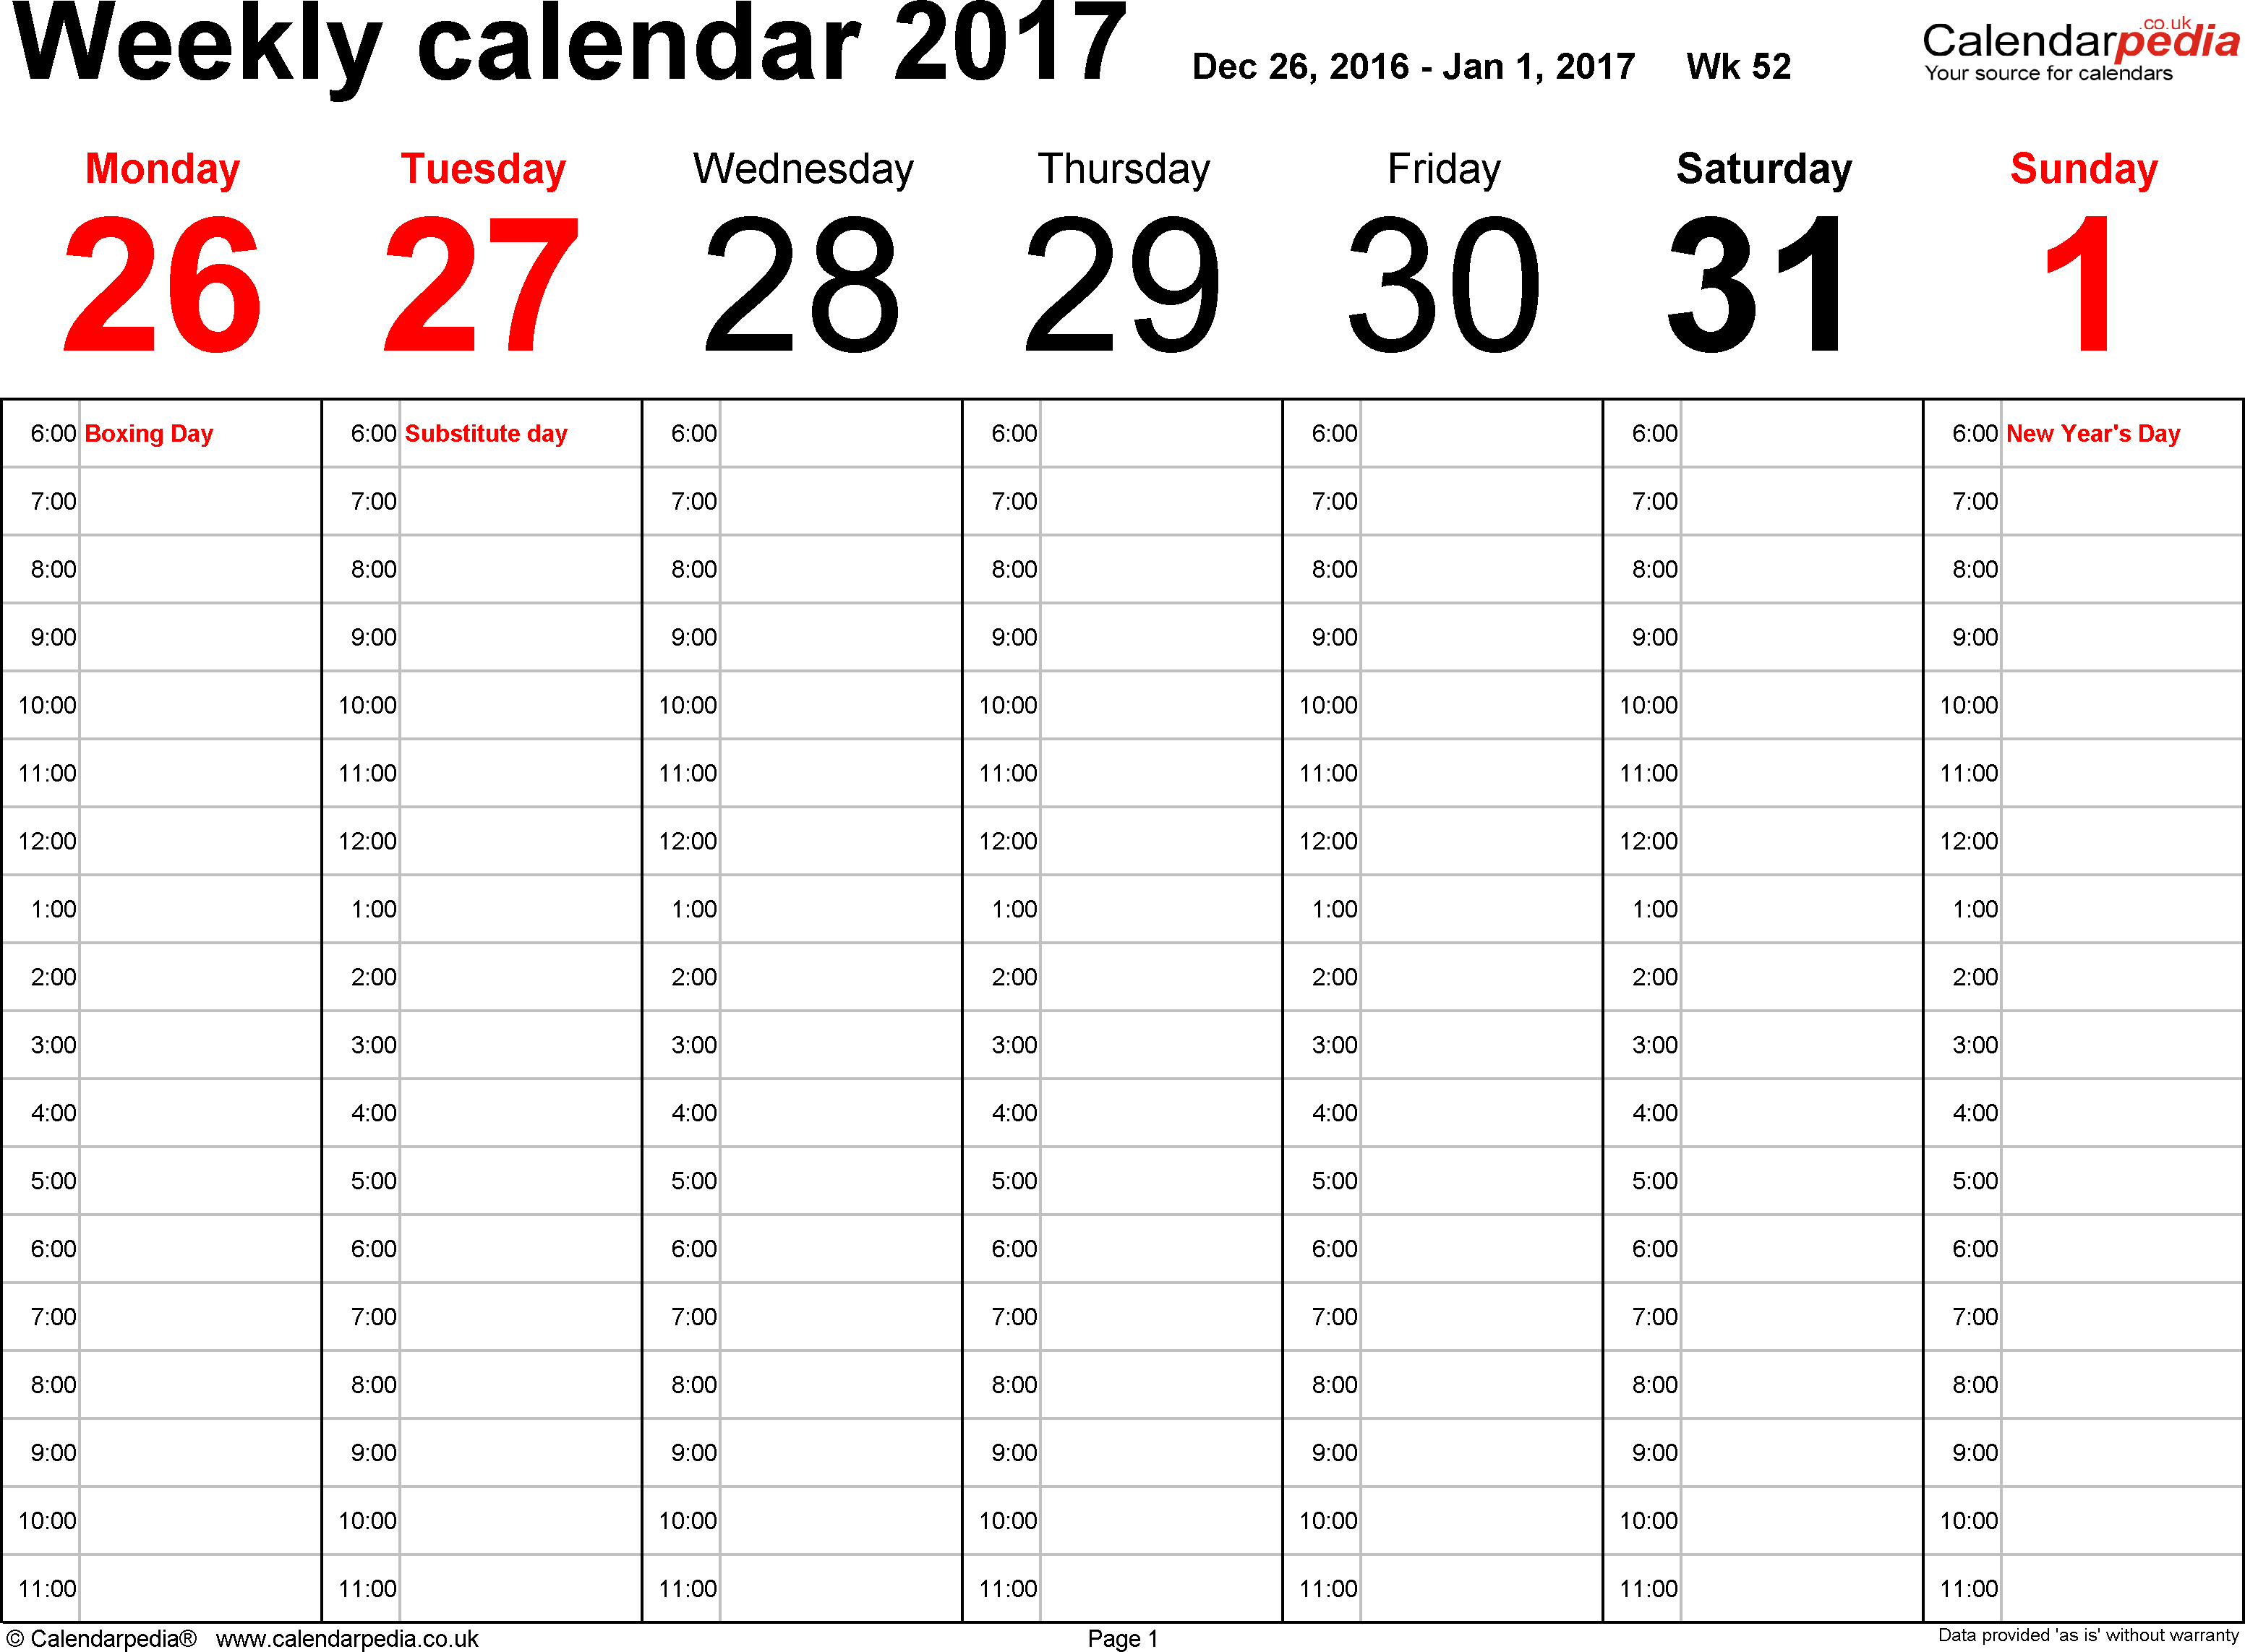 PDF template 1: Weekly calendar 2017, landscape orientation, 53 pages (1 calendar week on 1 page), time management layout (showing 18 hours per day from 6am to midnight in 1 hour steps)